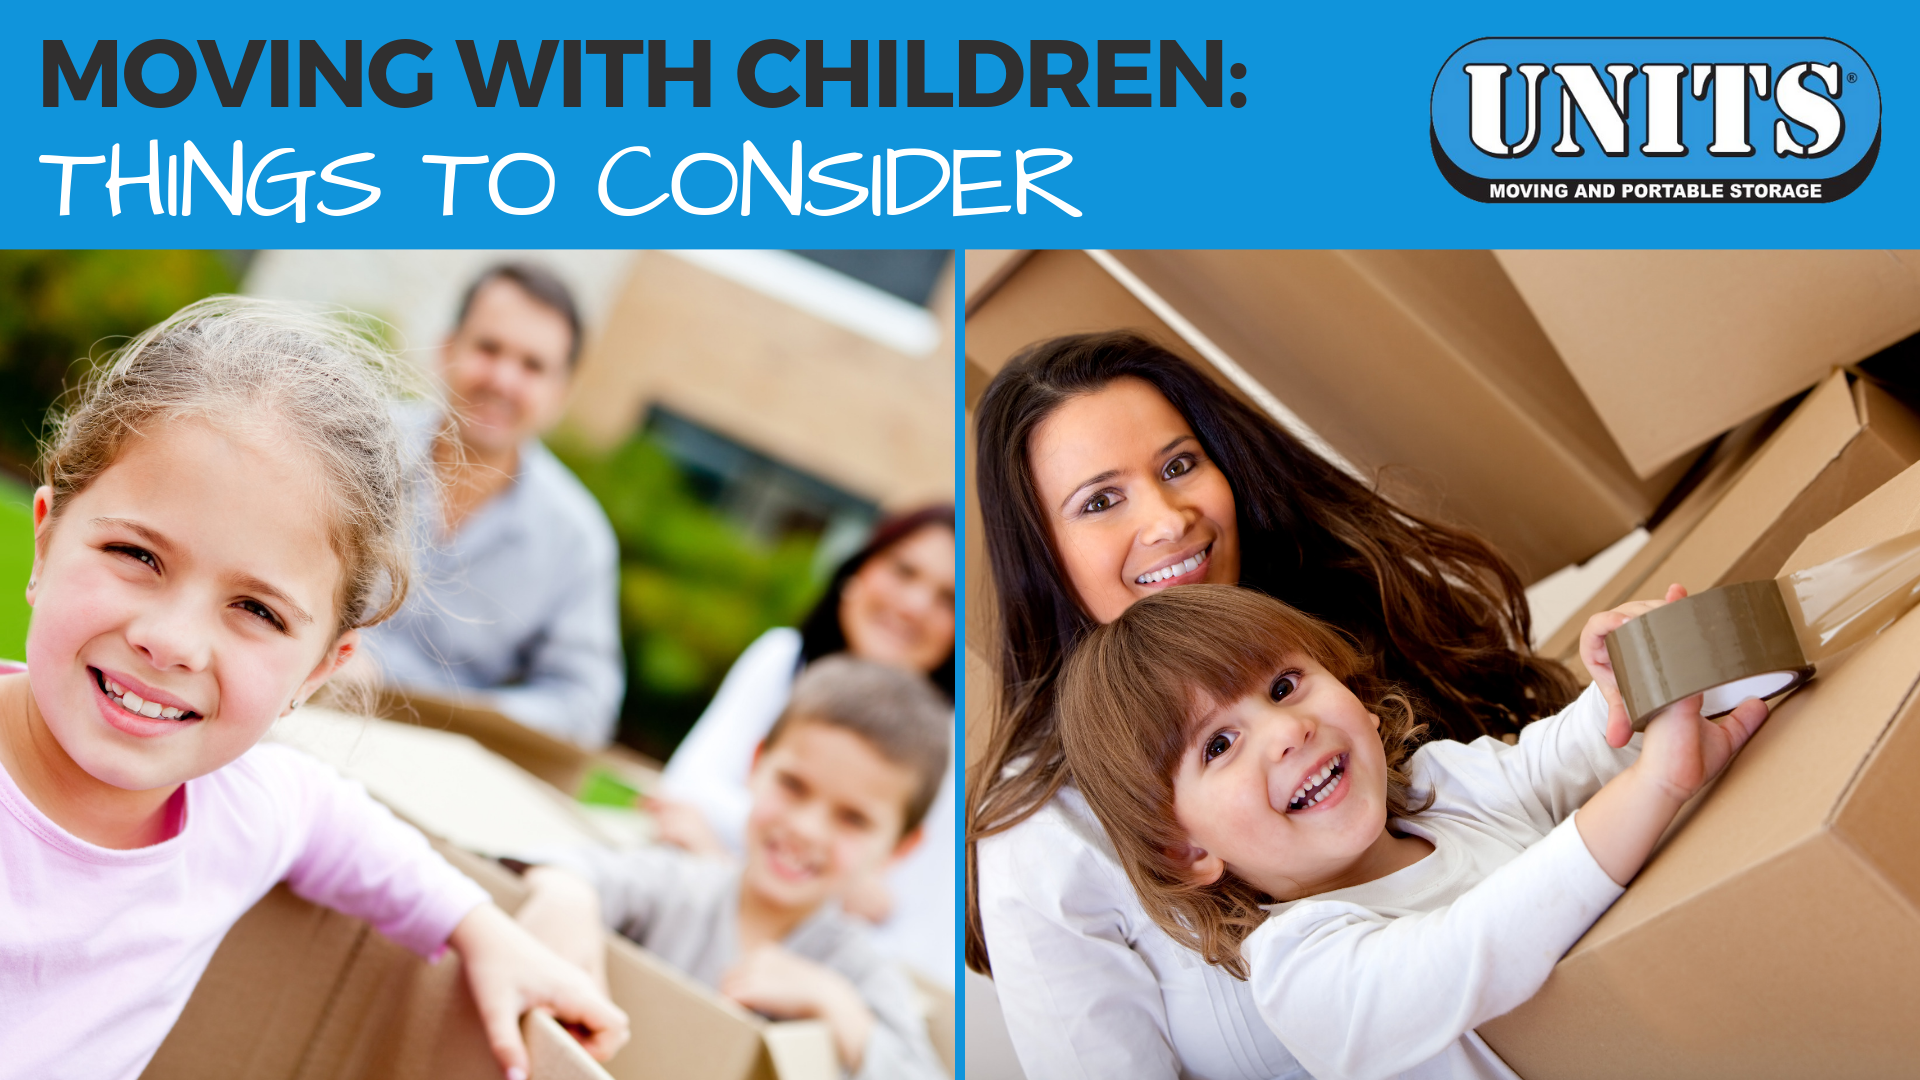 Moving With Children: Things To Consider